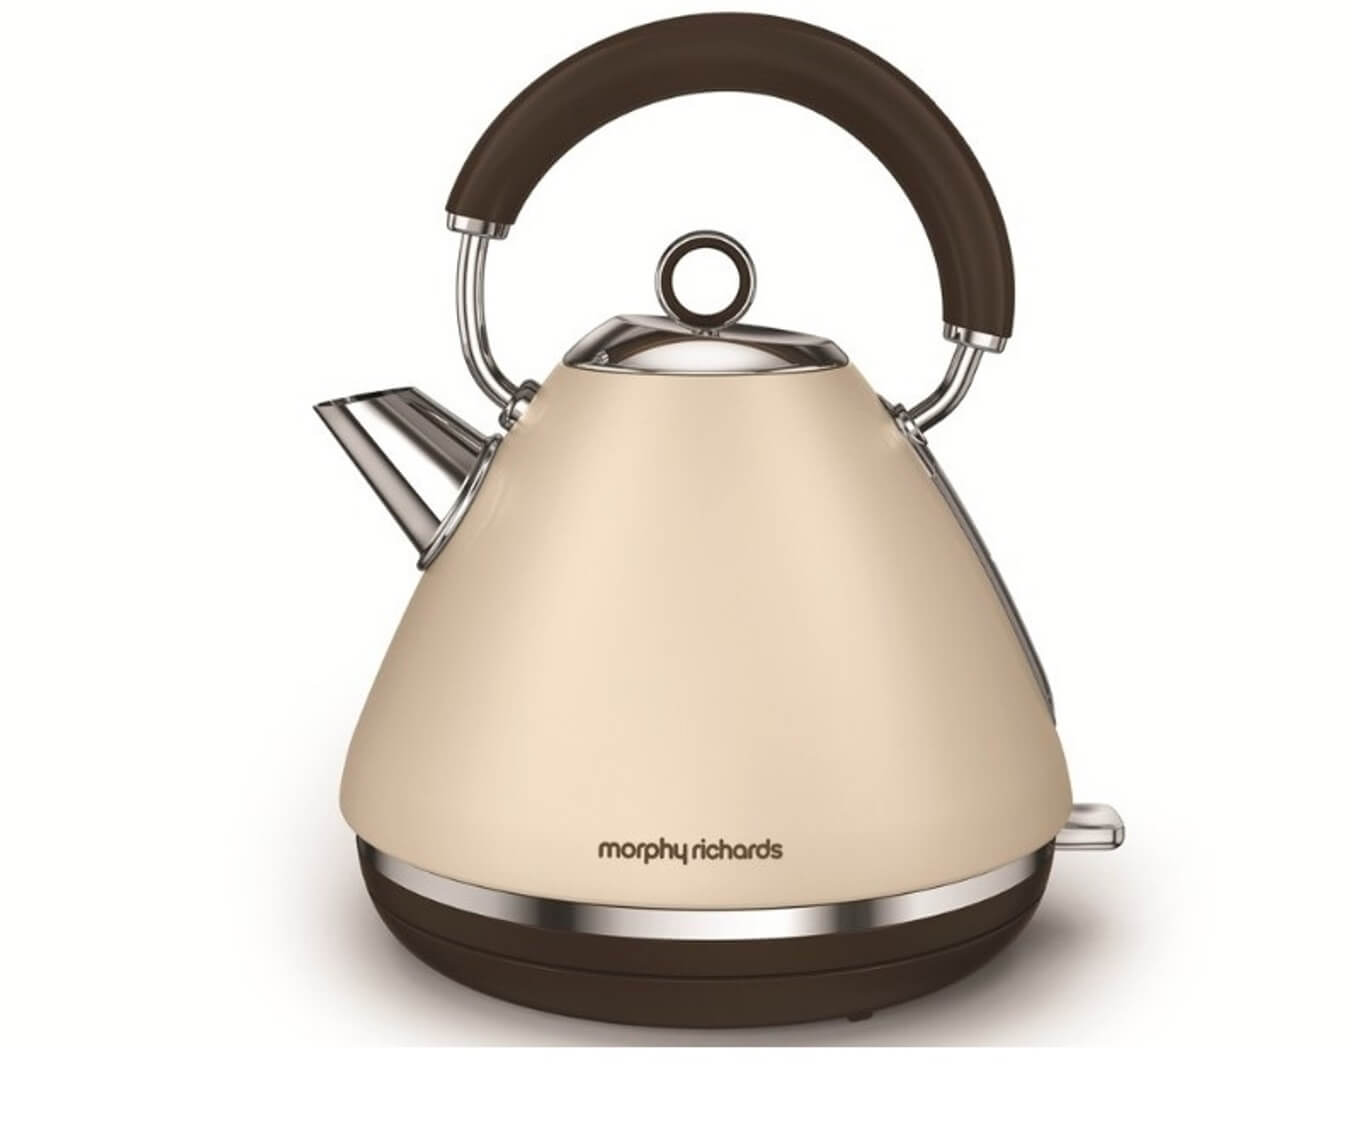 Онлайн каталог PROMENU: Чайник электрический Morphy Richards Accents, объем 1,5 л, песочный                               102101EE